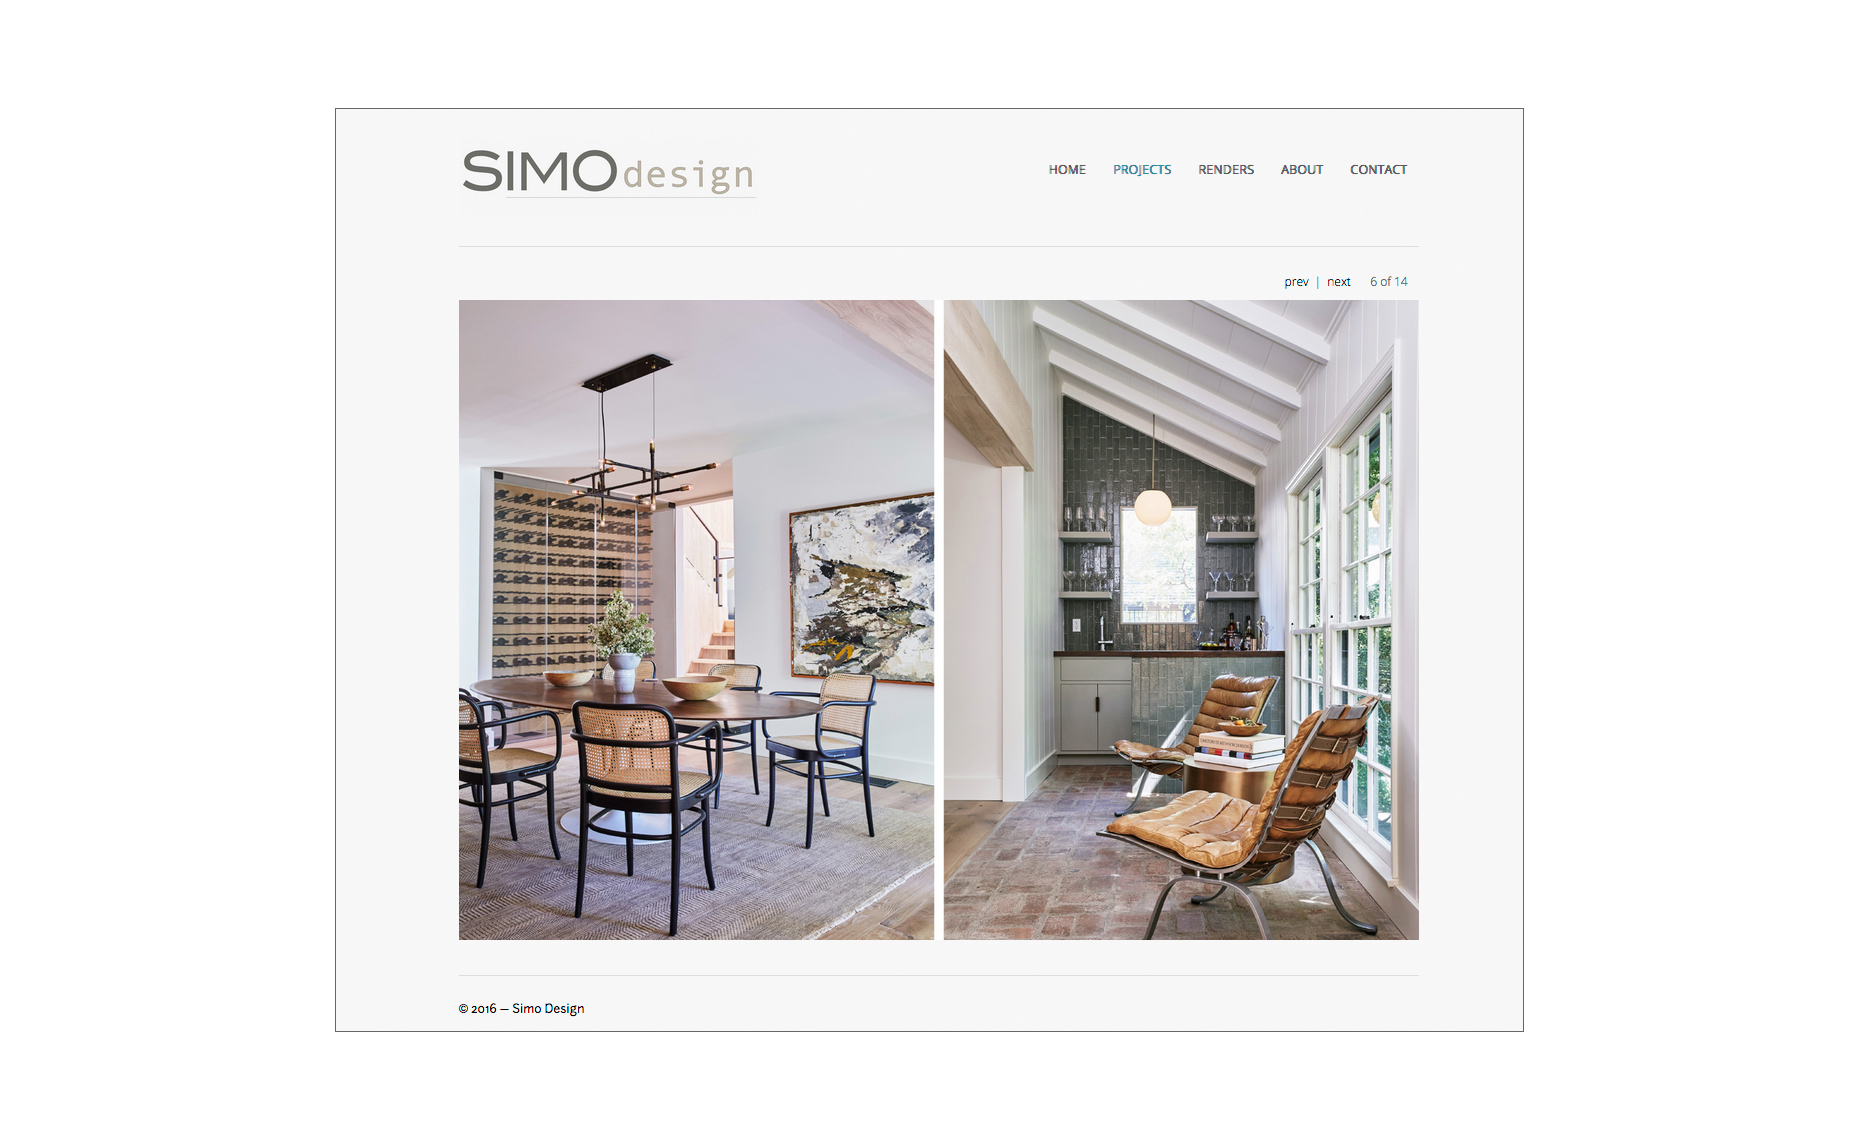 simodesign_web-5